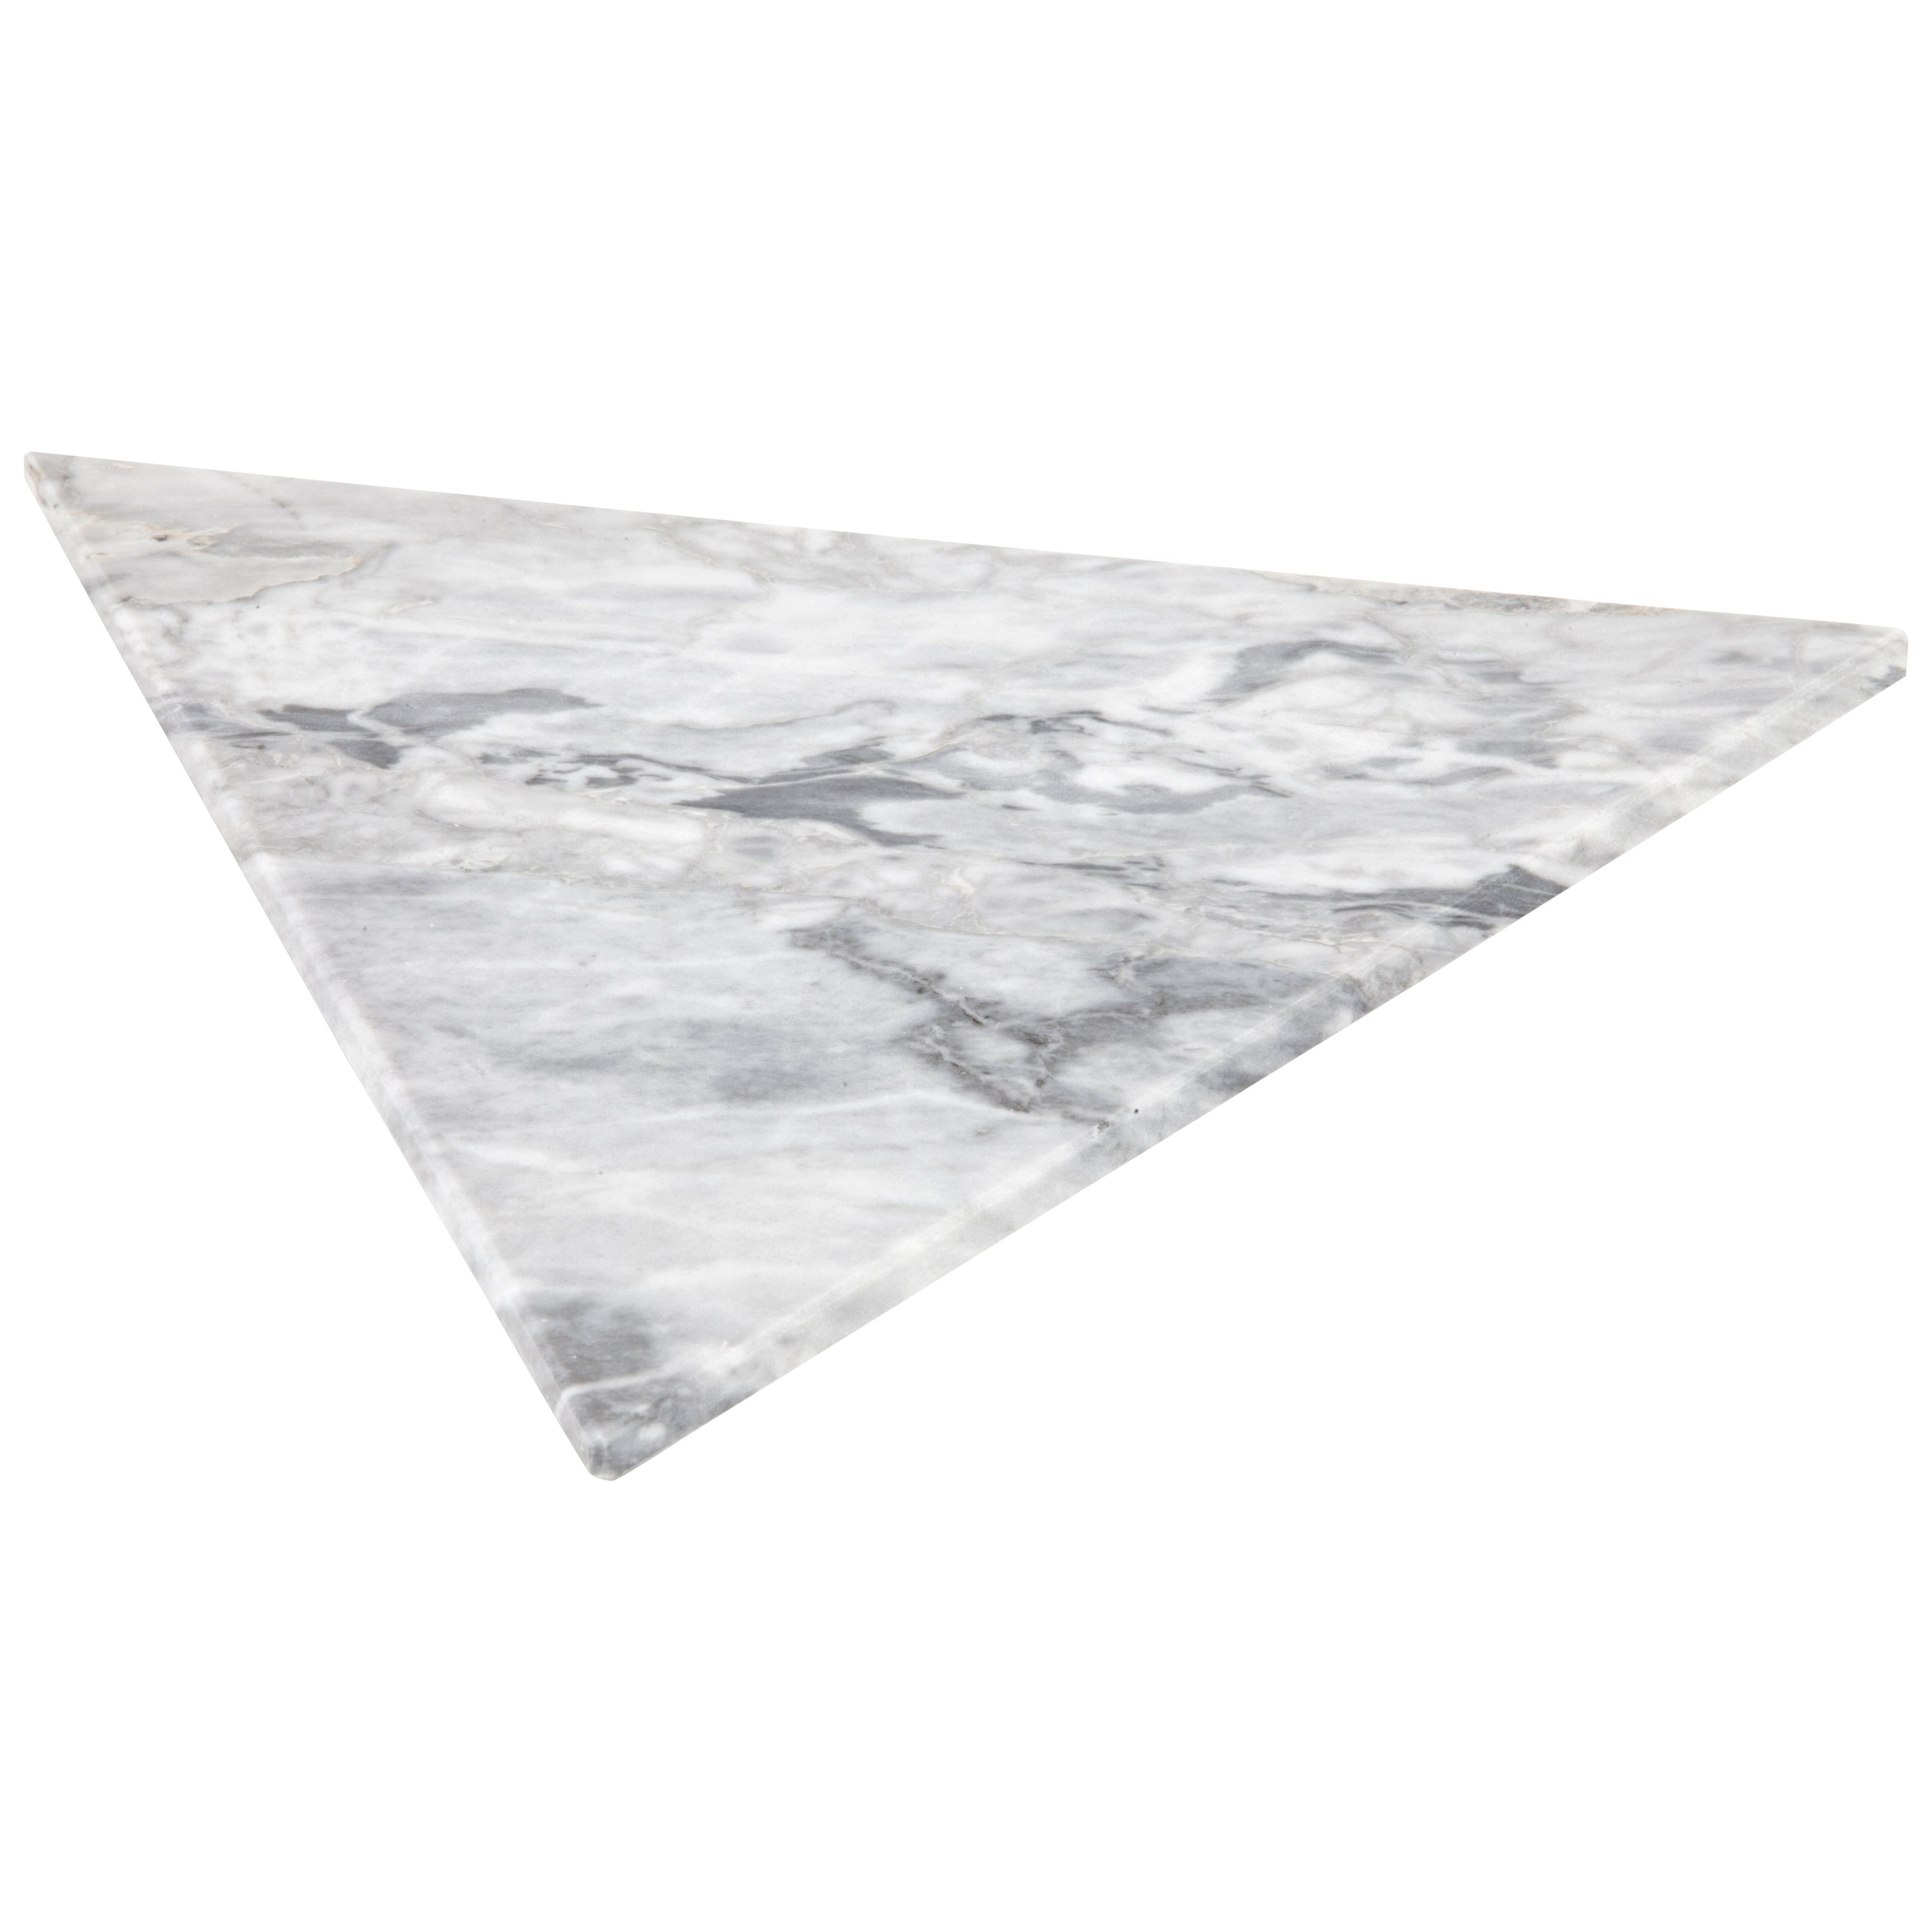 Triangular White Marble Cutting Board and Serving Tray